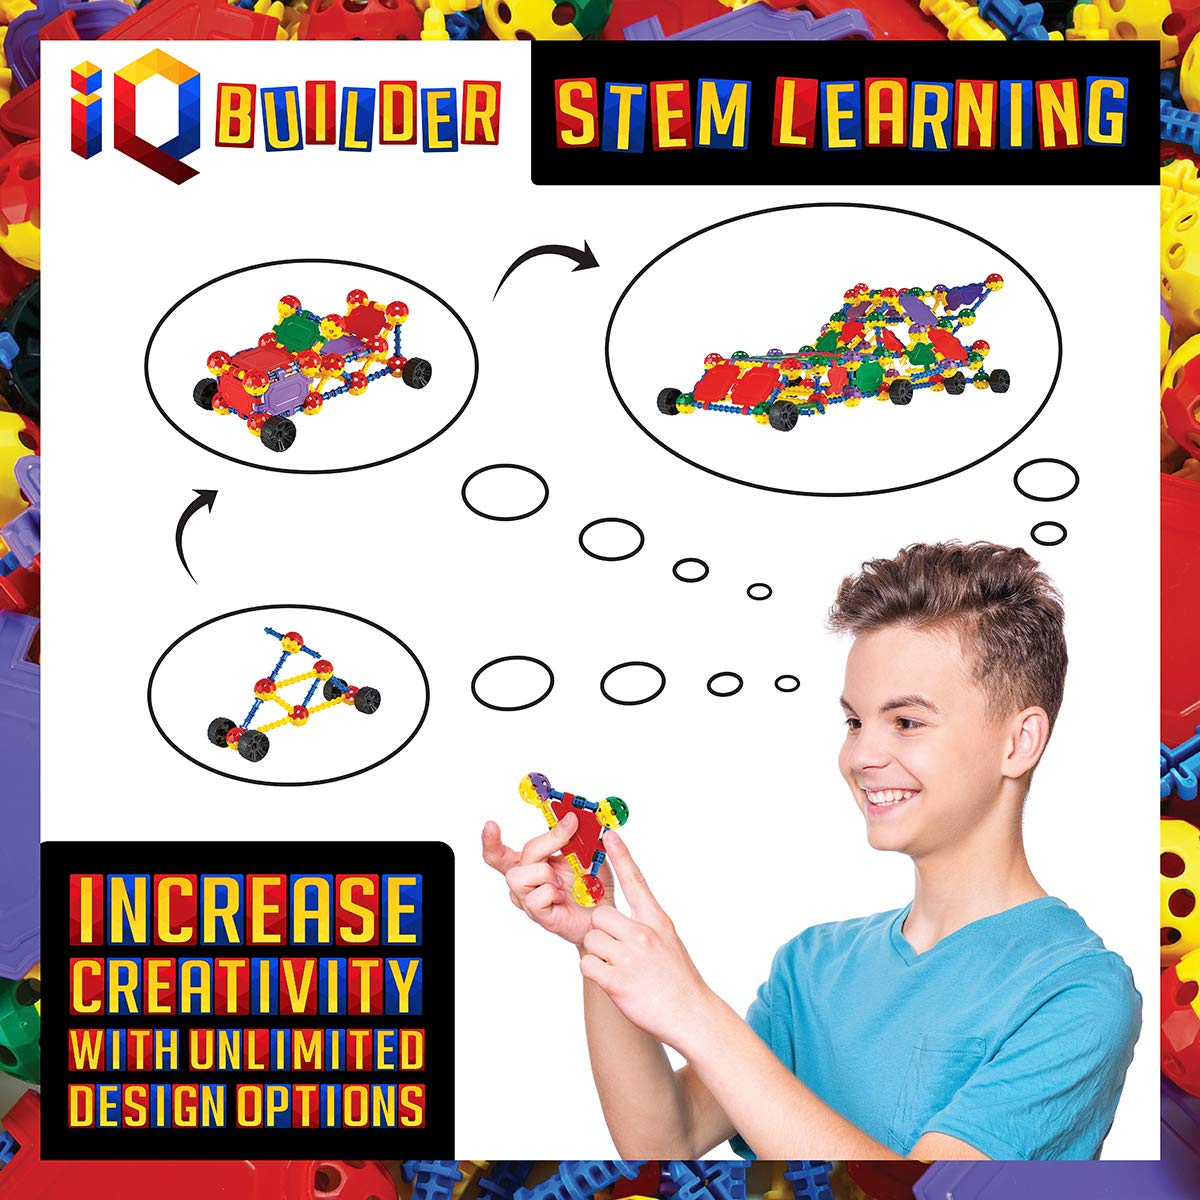 IQ BUILDER Activity Game STEM Learning Toys | Best Toy Gift for Kids Fun Educational Building Blocks Toy Set for Boys and Girls Ages 5 6 7 8 9 10 Year Old Creative Construction Engineering